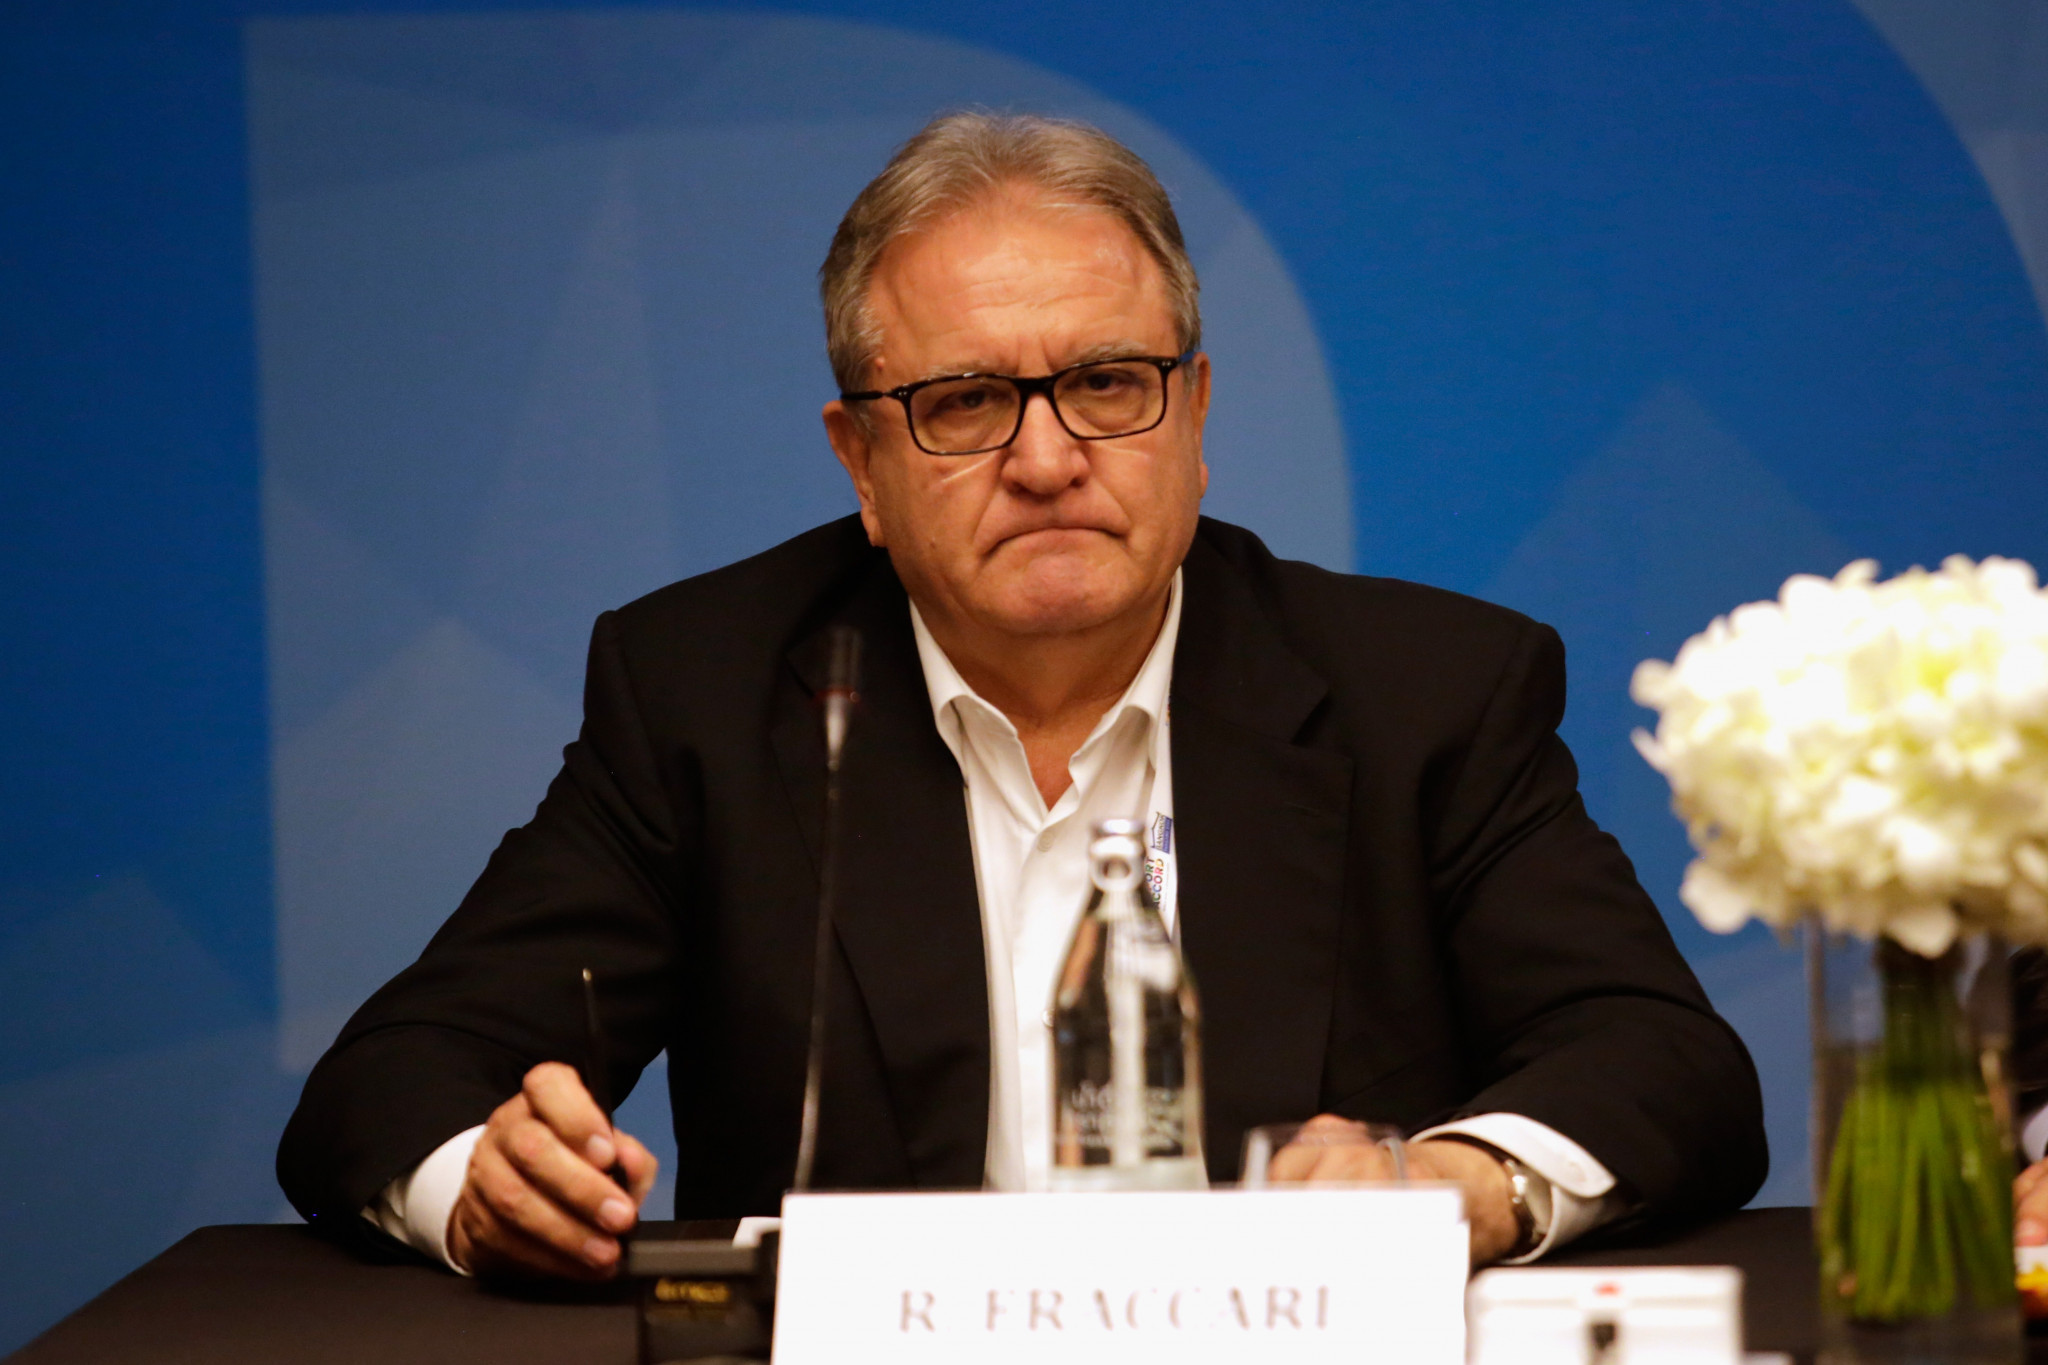 Riccardo Fraccari is the current WBSC President ©Getty Images